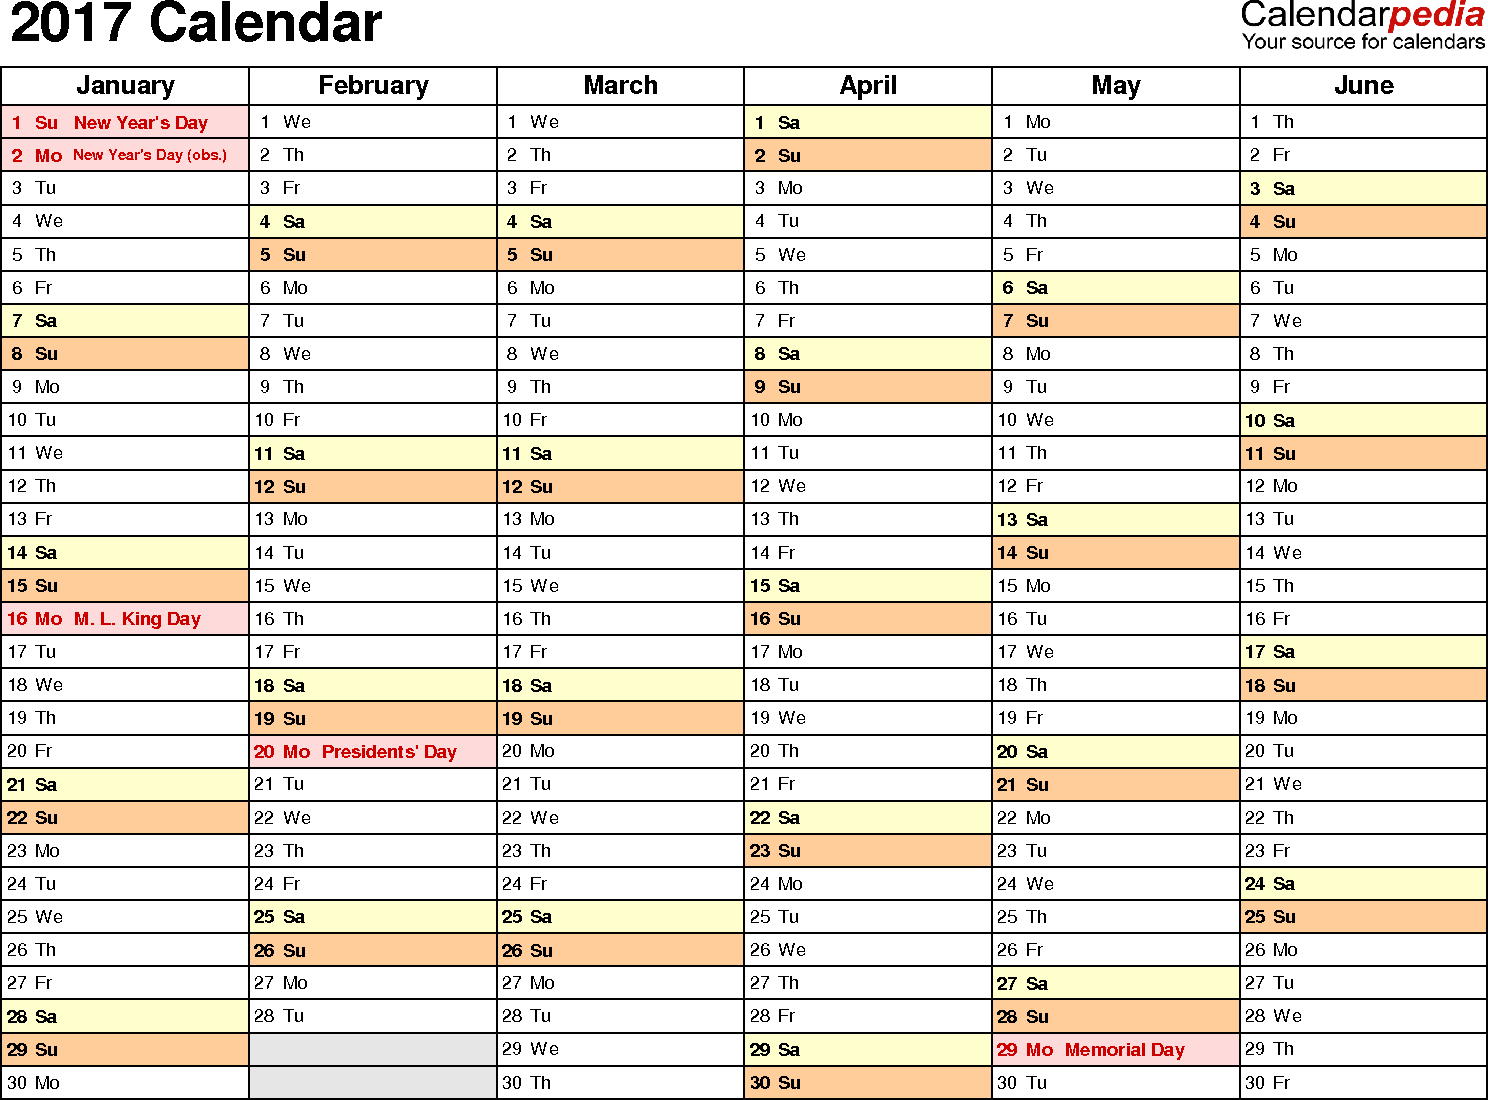 Ediblewildsus  Outstanding  Calendar  Download  Free Printable Excel Templates Xls With Glamorous Template   Calendar For Excel Months Horizontally  Pages Landscape Orientation With Appealing Download Calendar Excel Also Mail Merge Excel Labels In Addition How To Protect Excel Sheet And Plot Data In Excel As Well As Excel  Formulas Cheat Sheet Additionally Excel  Analysis Toolpak From Calendarpediacom With Ediblewildsus  Glamorous  Calendar  Download  Free Printable Excel Templates Xls With Appealing Template   Calendar For Excel Months Horizontally  Pages Landscape Orientation And Outstanding Download Calendar Excel Also Mail Merge Excel Labels In Addition How To Protect Excel Sheet From Calendarpediacom